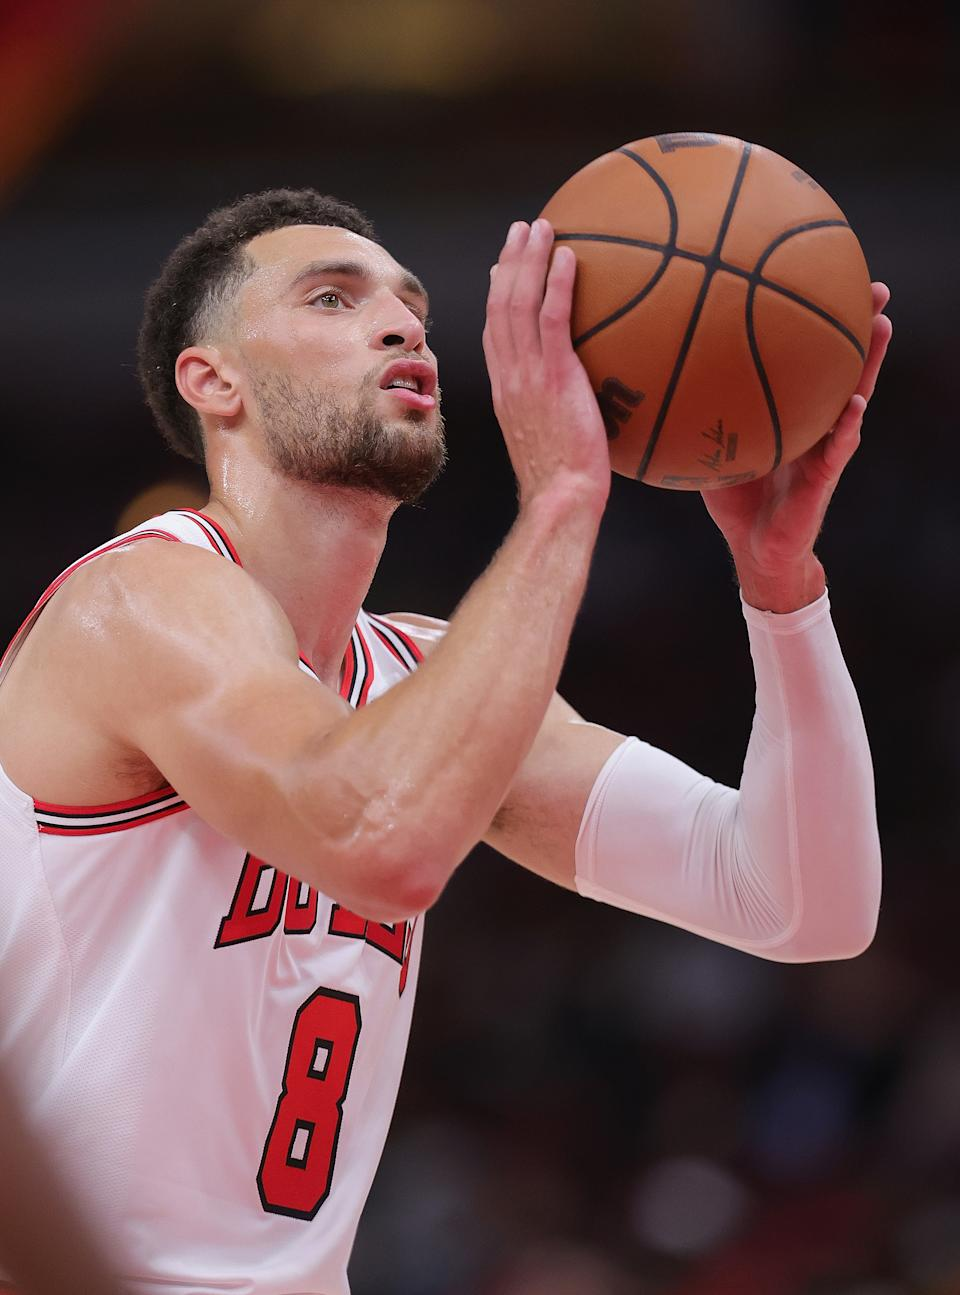 CHICAGO, ILLINOIS - OCTOBER 05: Zach LaVine #8 of the Chicago Bulls shoots a free throw against the Cleveland Cavaliers during a preseason game at the United Center on October 05, 2021 in Chicago, Illinois. The Bulls defeated the Cavaliers 131-95. NOTE TO USER: User expressly acknowledges and agrees that, by downloading and or using this photograph, User is consenting to the terms and conditions of the Getty Images License Agreement. (Photo by Jonathan Daniel/Getty Images)